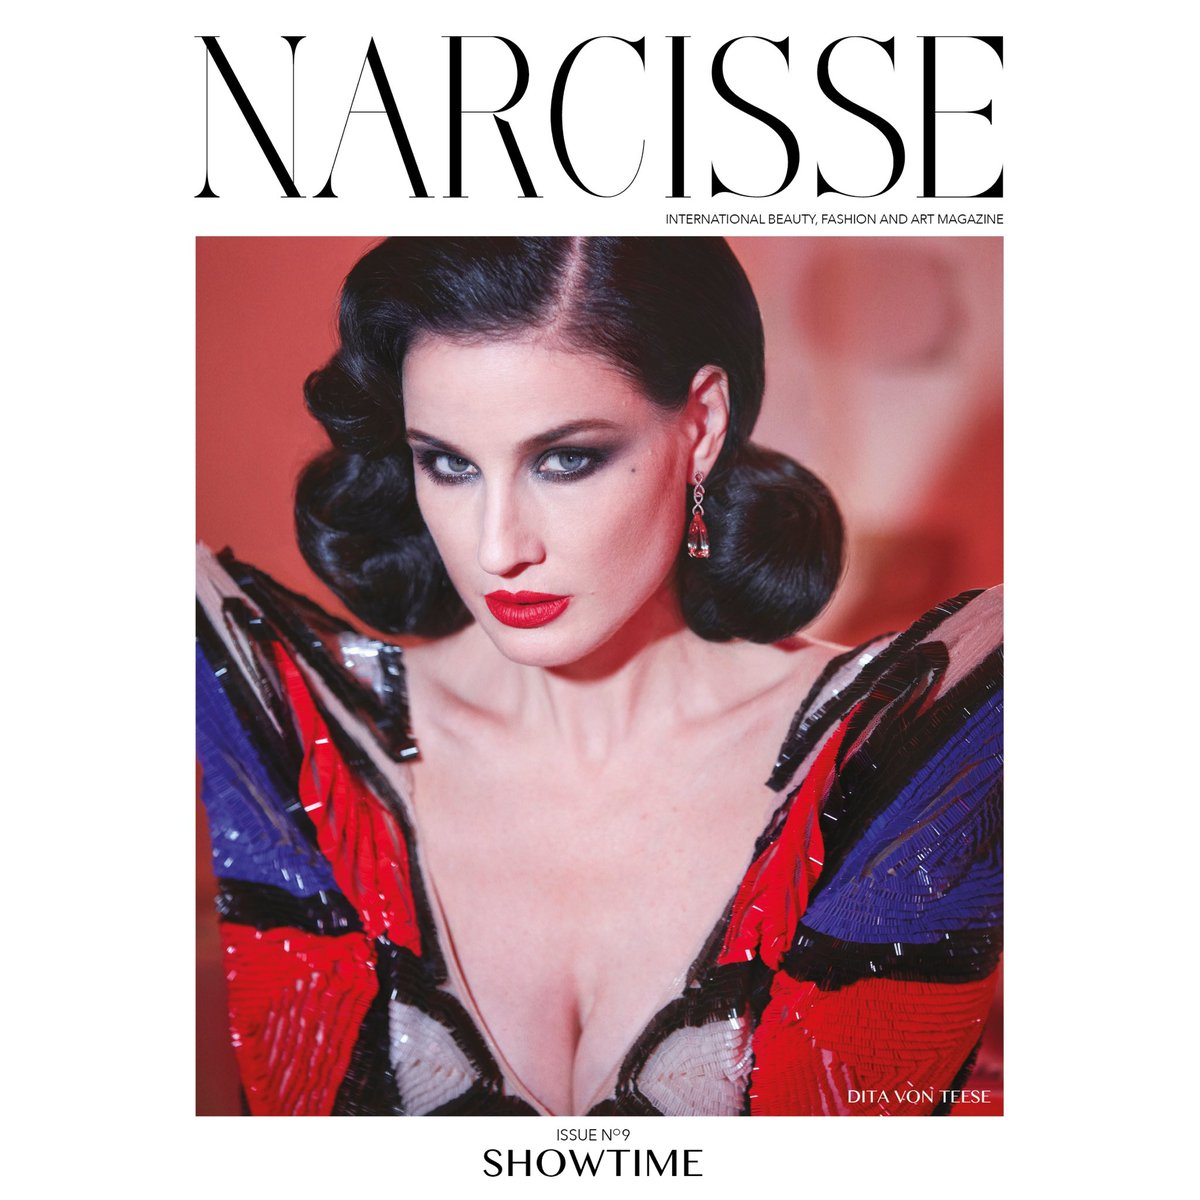 New issue of Narcisse Magazine featuring @JPGaultier ???? @GregSwalesart https://t.co/rbfMMYYlPS